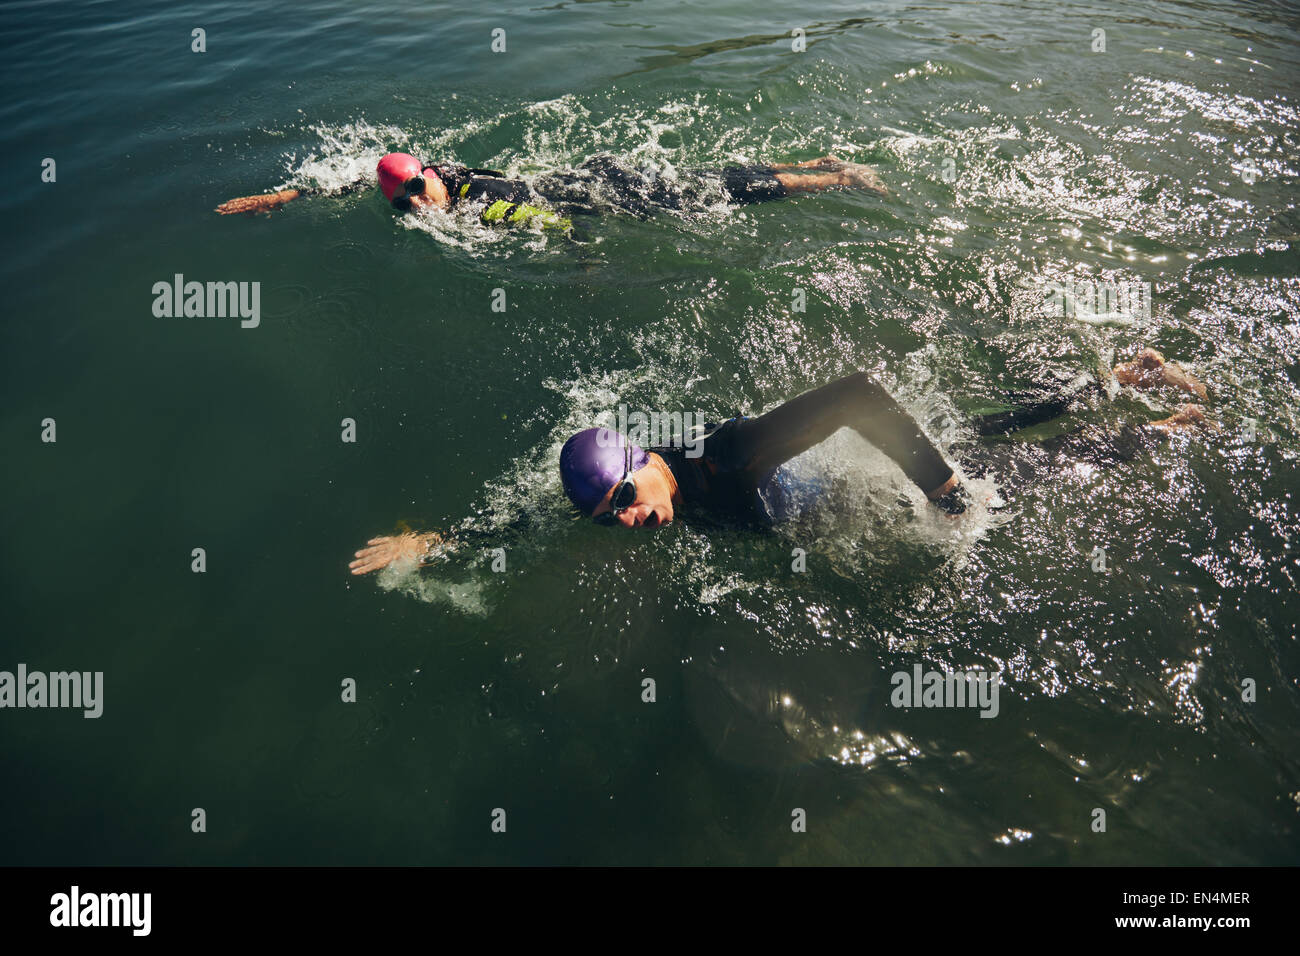 Competitors fighting in the swim event of a triathlon competition. - Stock Image